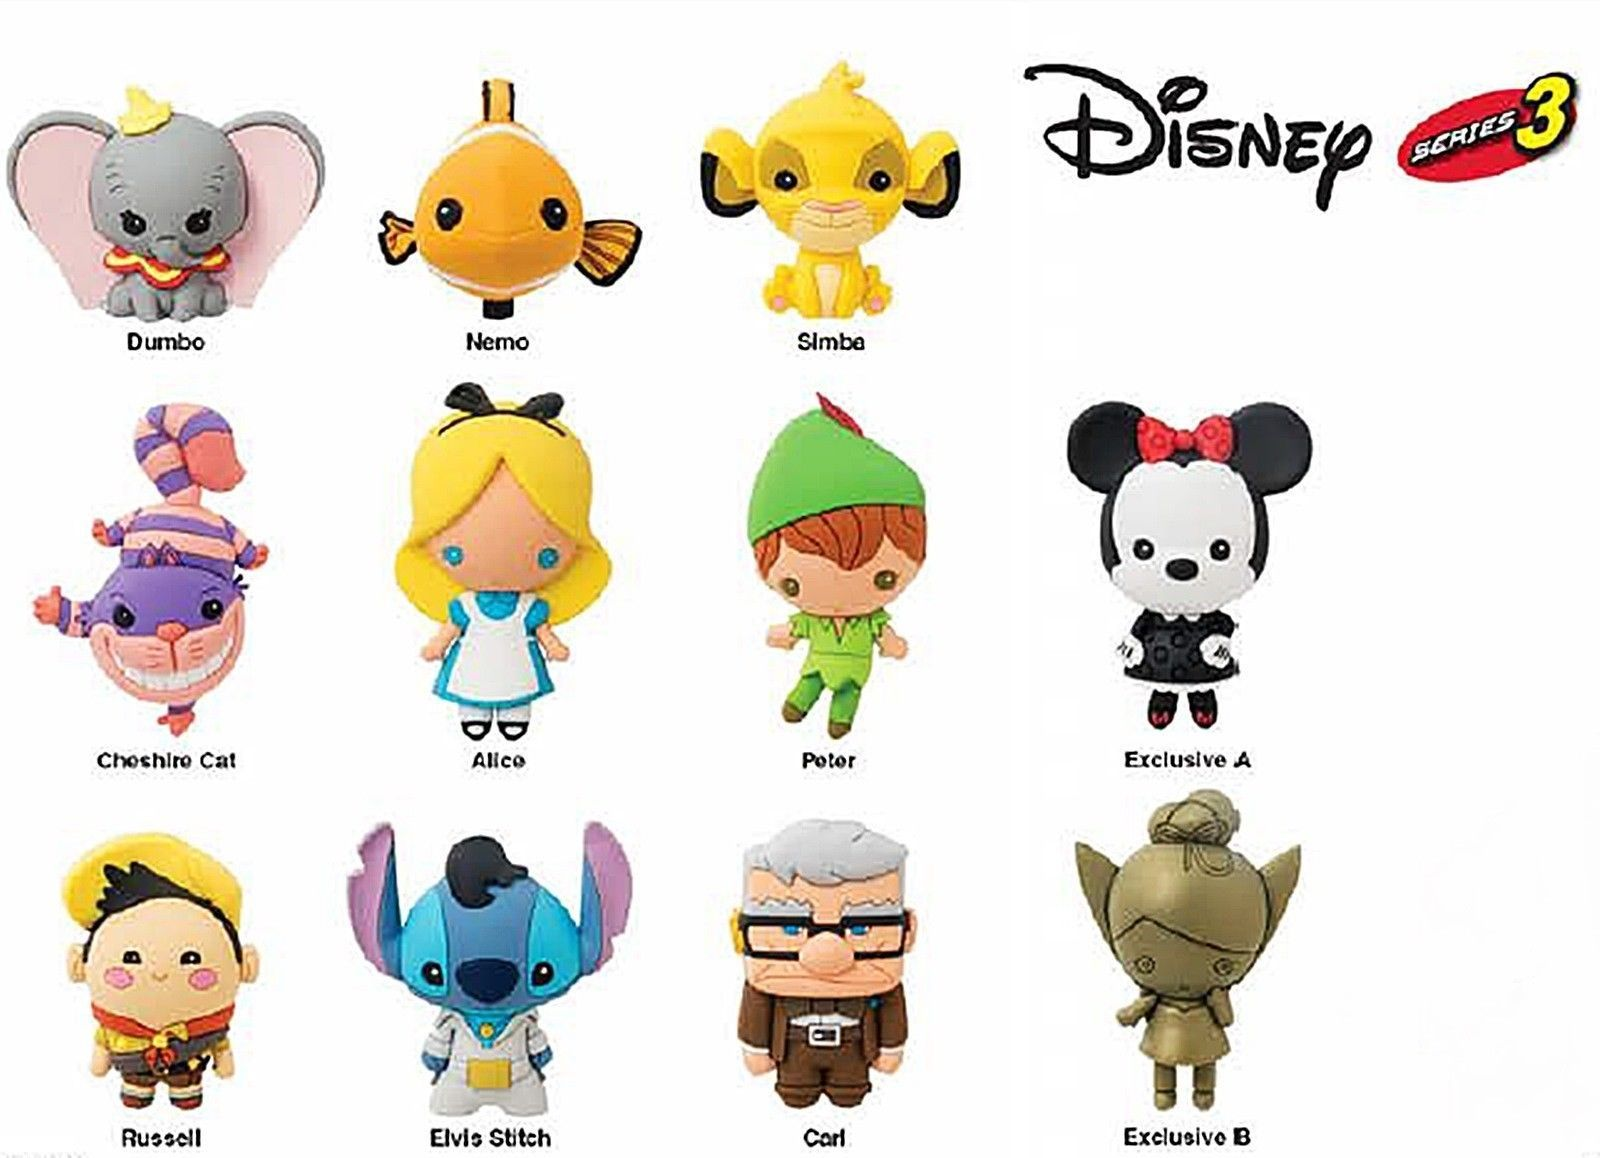 663d0ca1663 Disney Figural Keyring Blind Bags Series 3 - Included: Dumbo, Nemo, Simba,  The Cheshire Cat, Alice, Peter Pan, Minnie Mouse as Mystery Exclusive A,  Russel, ...